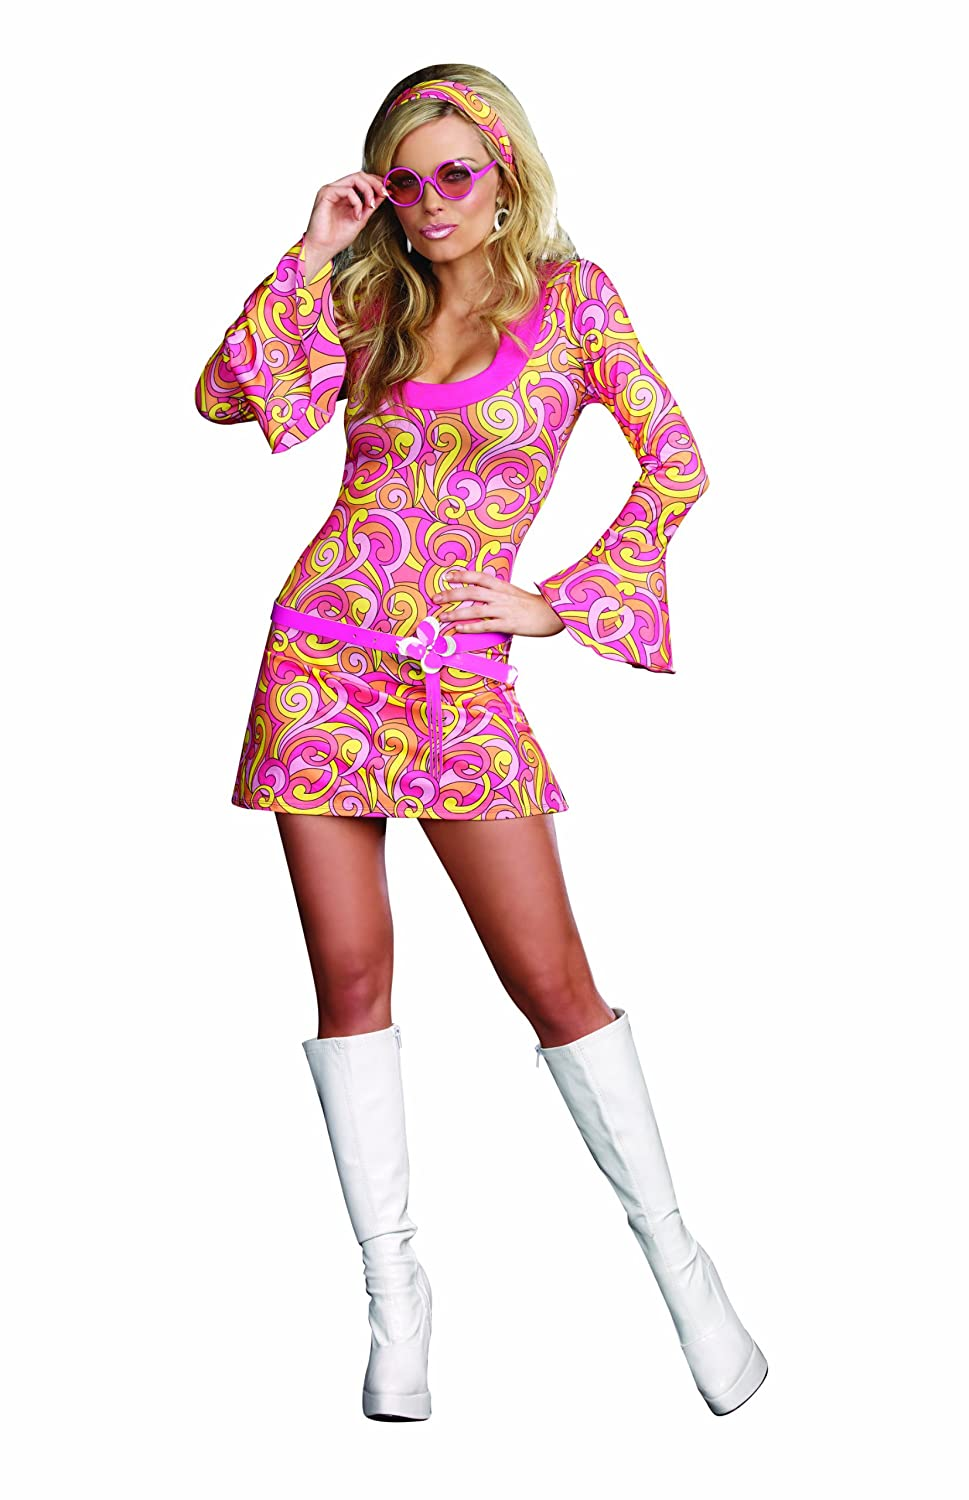 60s Costumes: Hippie, Go Go Dancer, Flower Child, Mod Style Dreamgirl Womens Go Go Gorgeous Costume $26.99 AT vintagedancer.com